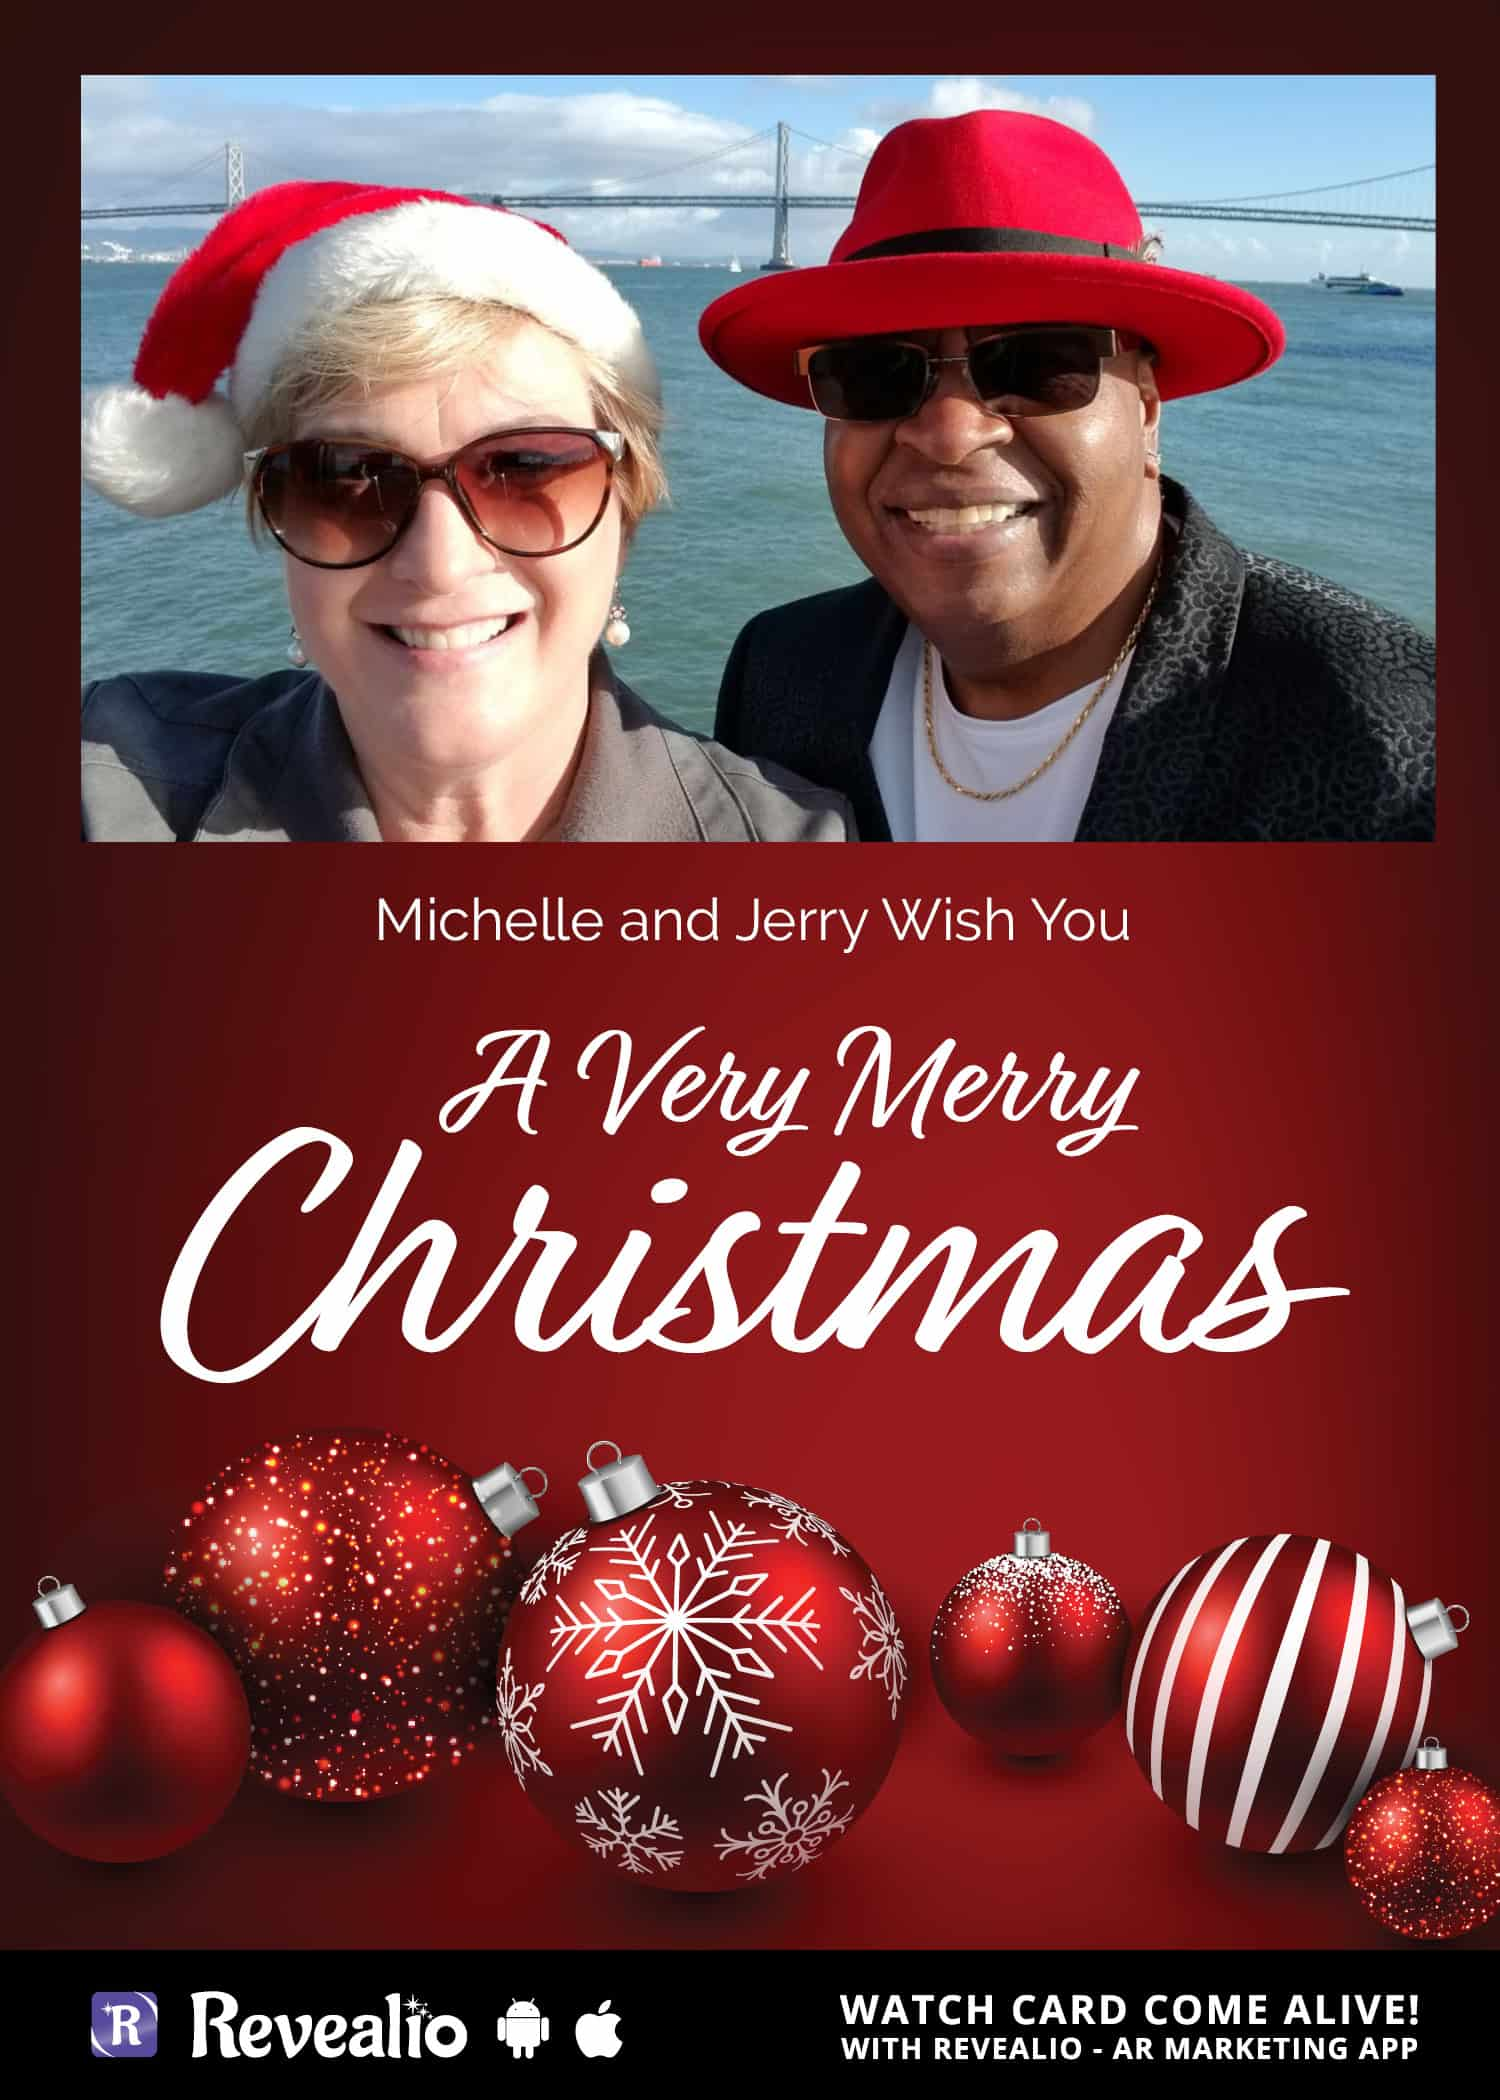 Christmas Card Comes Alive With Personalized Video Message